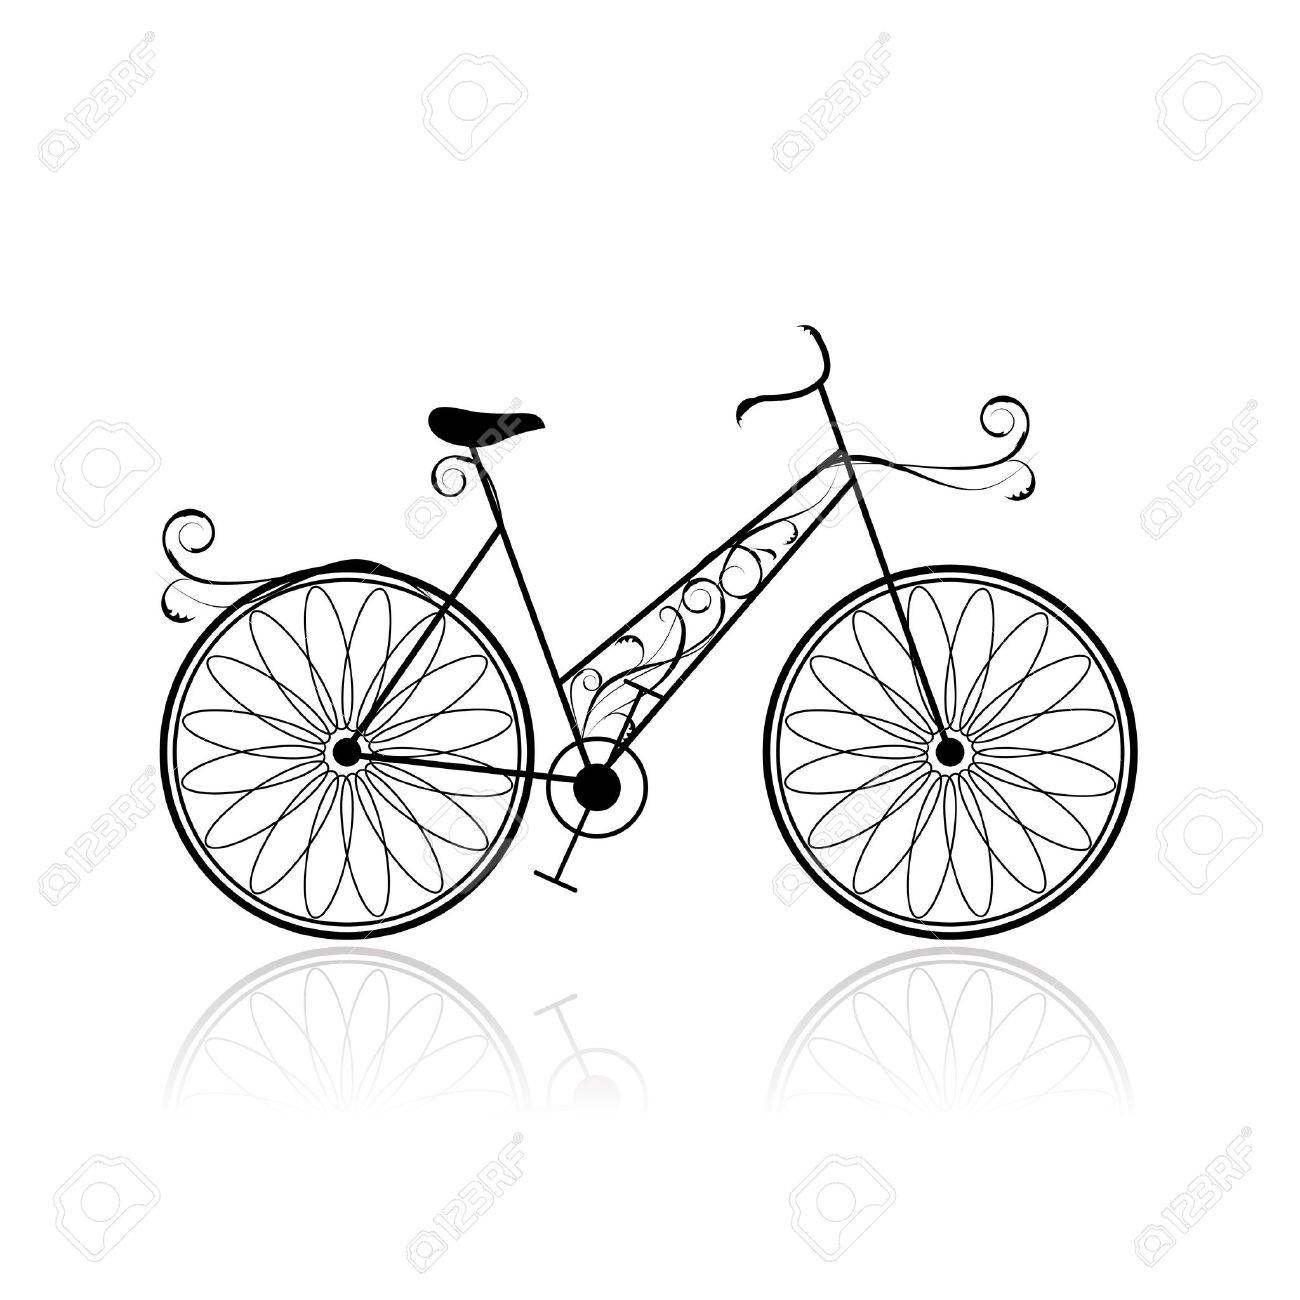 1300x1300 Female Bicycle For Your Design Royalty Free Cliparts, Vectors,